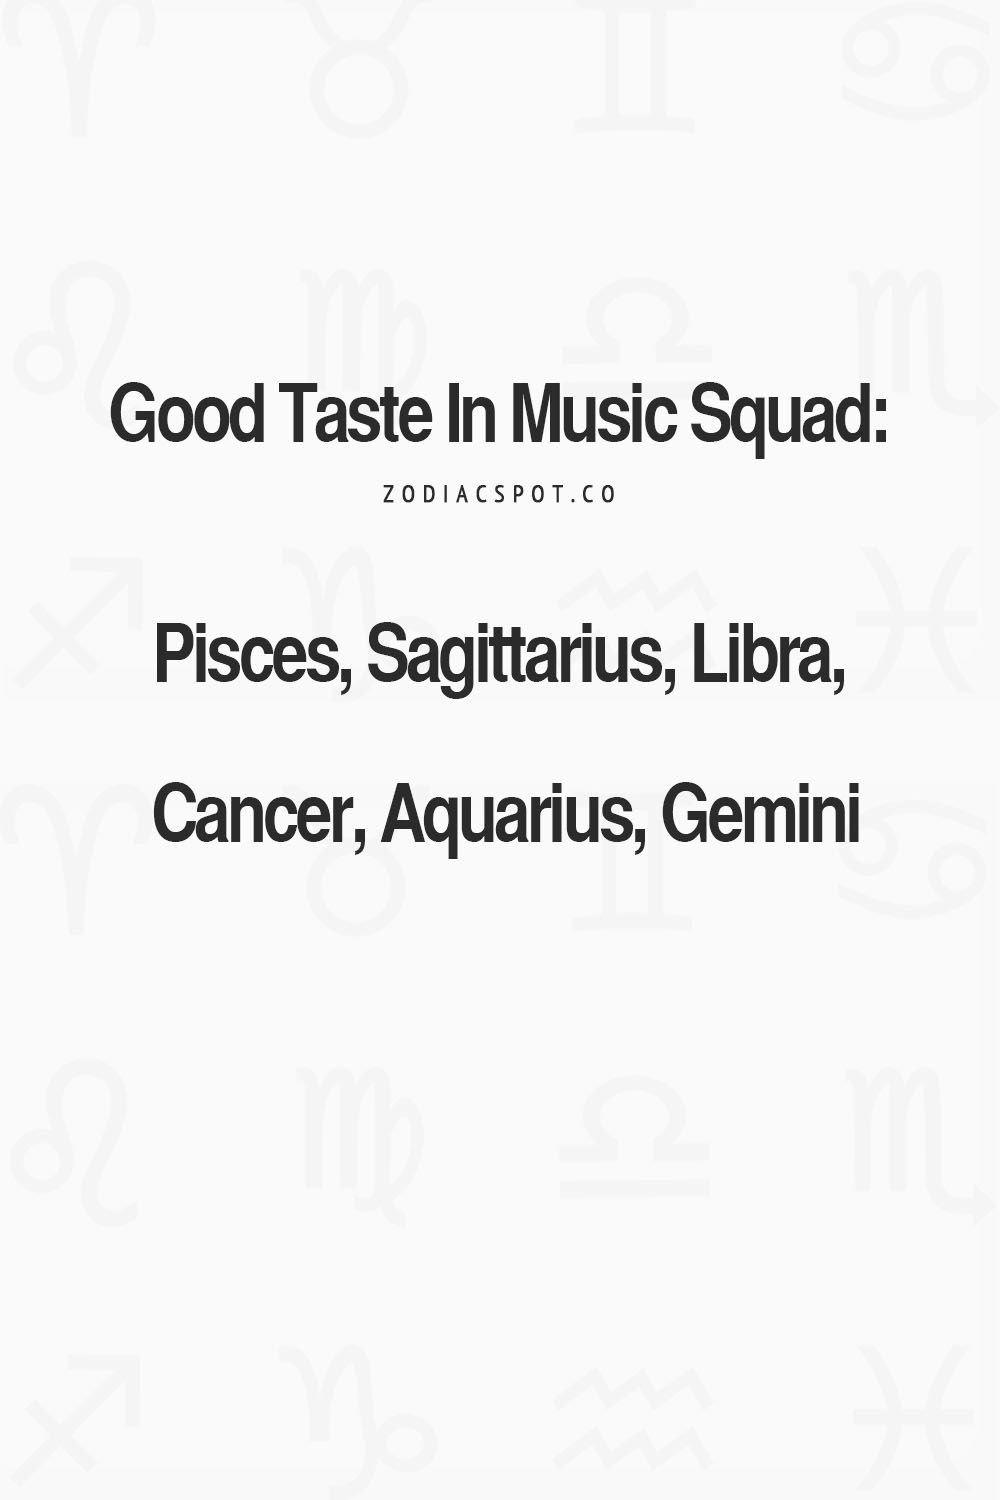 Believe it or not a scorpio can really have good taste in music too compatibility zodiacspot your all in one source for astrology nvjuhfo Images